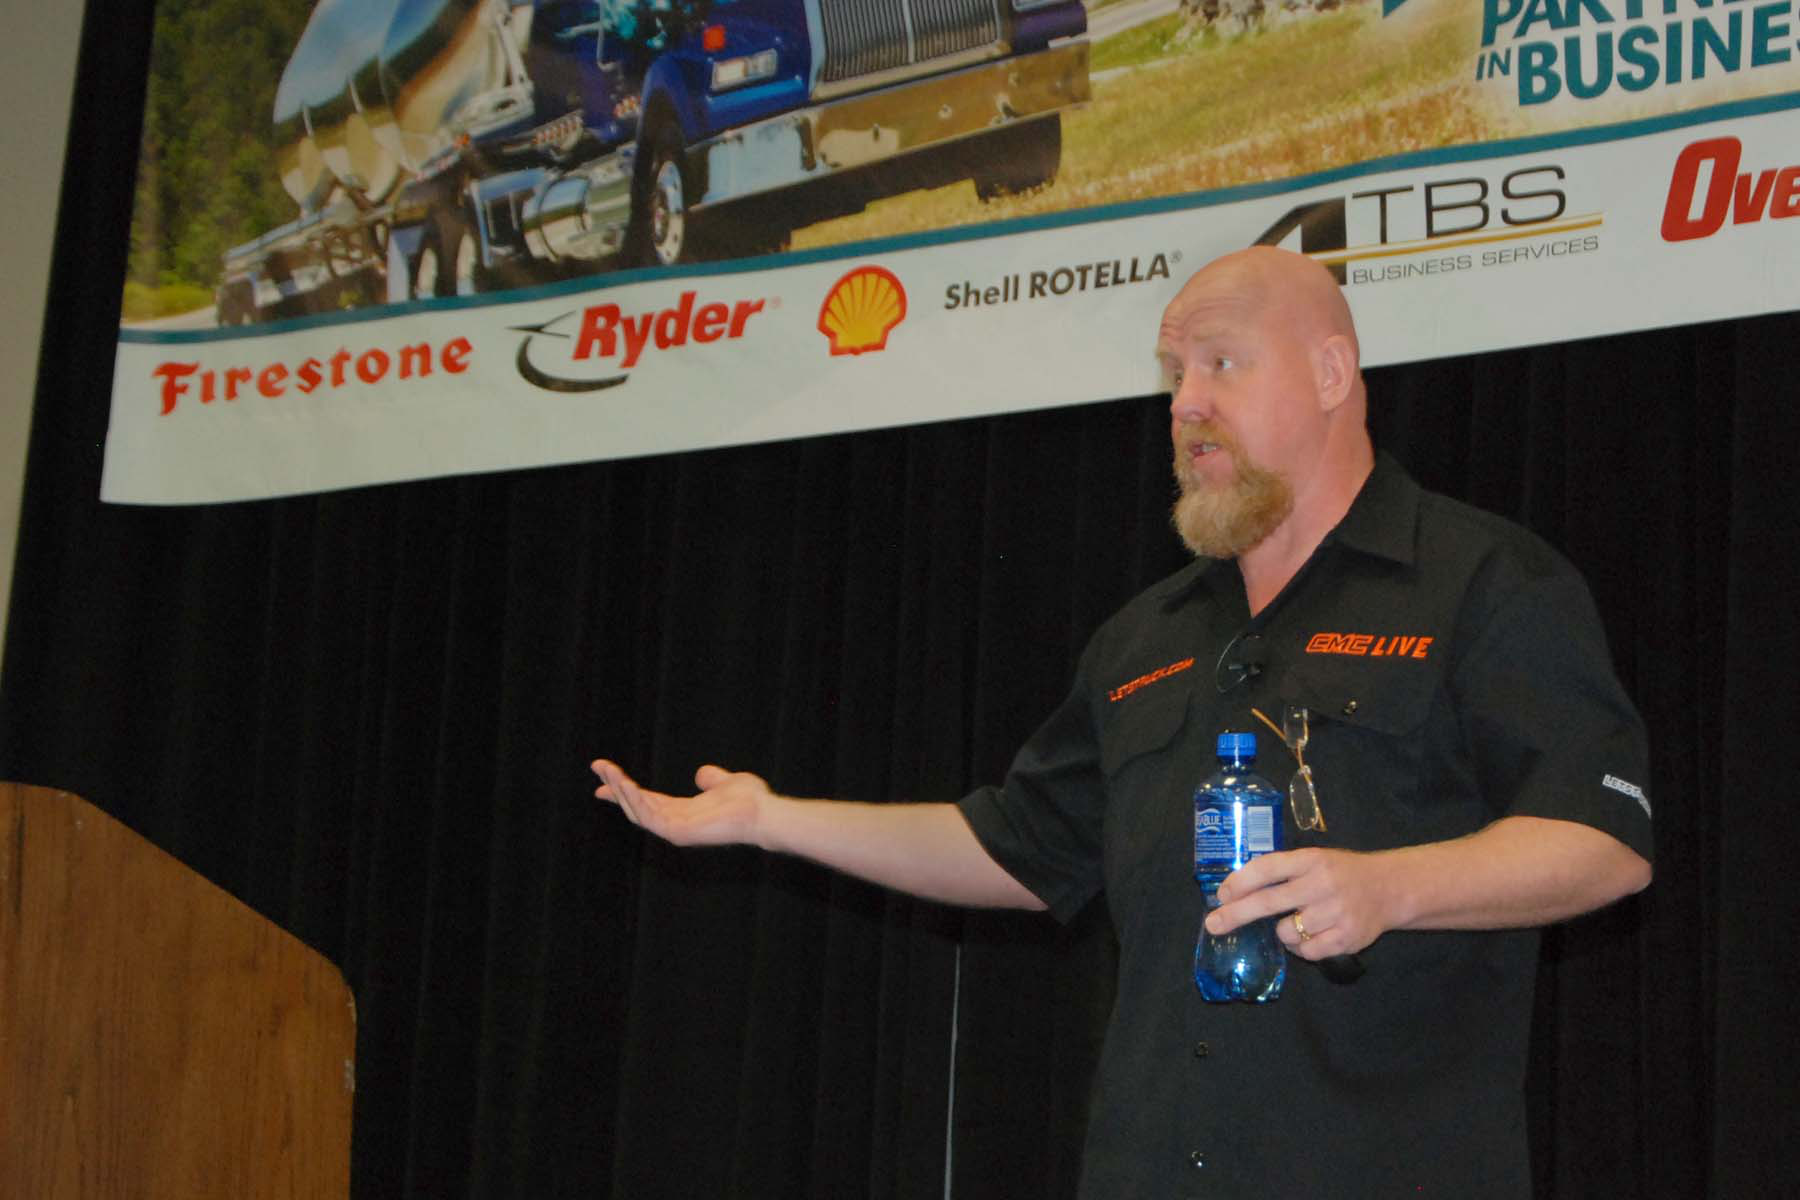 Kevin Rutherford speaks at Overdrive's Partners in Business seminar.